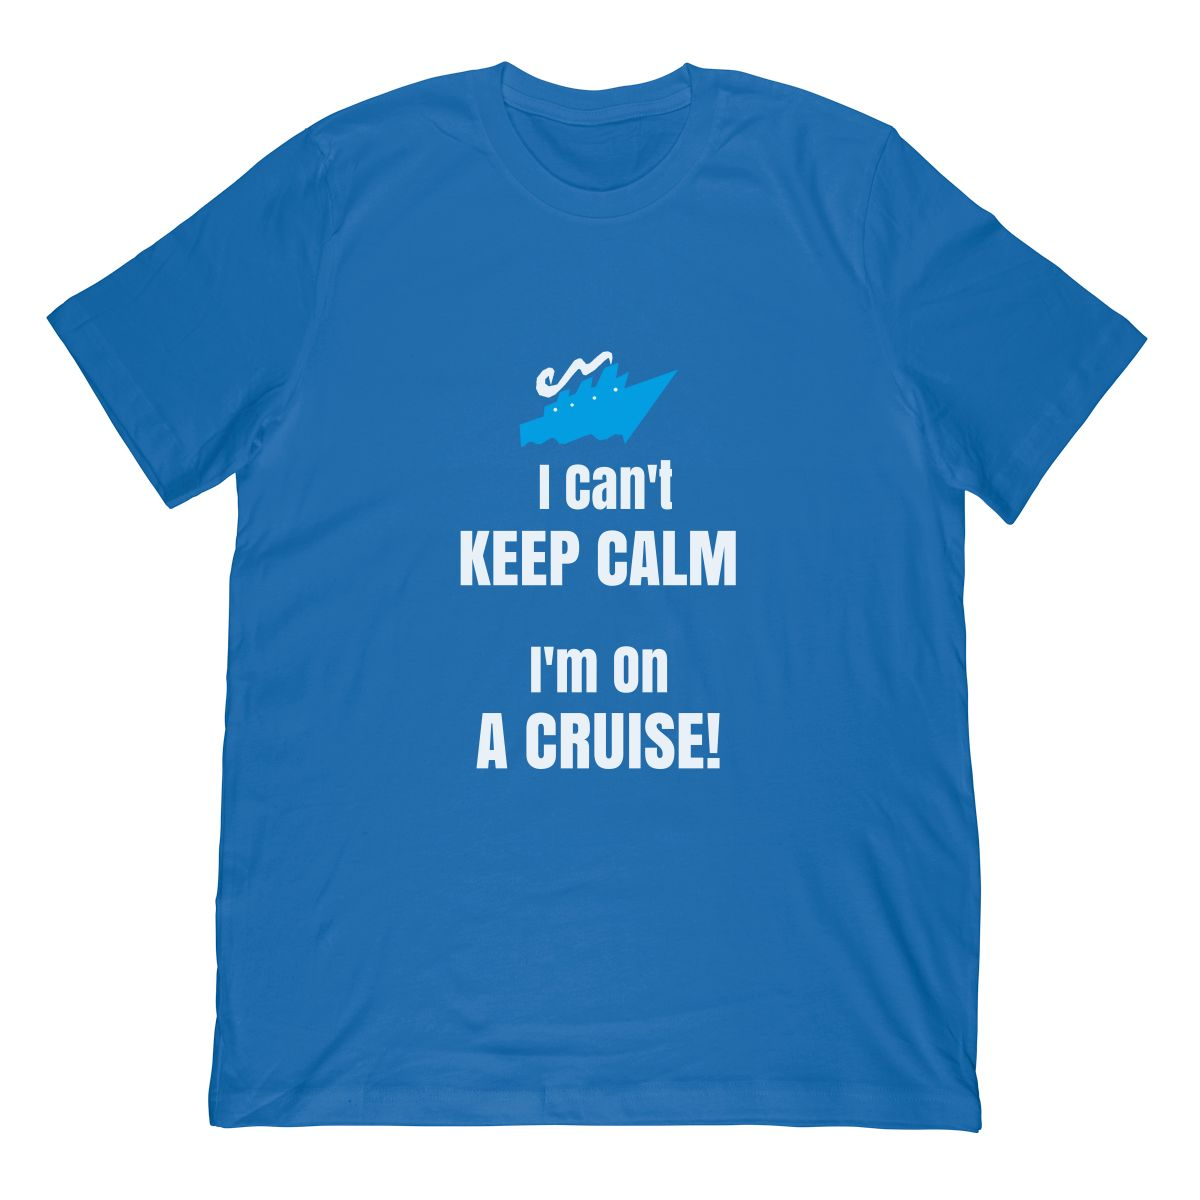 Cruise Ship Shirt I Can't Keep Calm I'm On A Cruise!